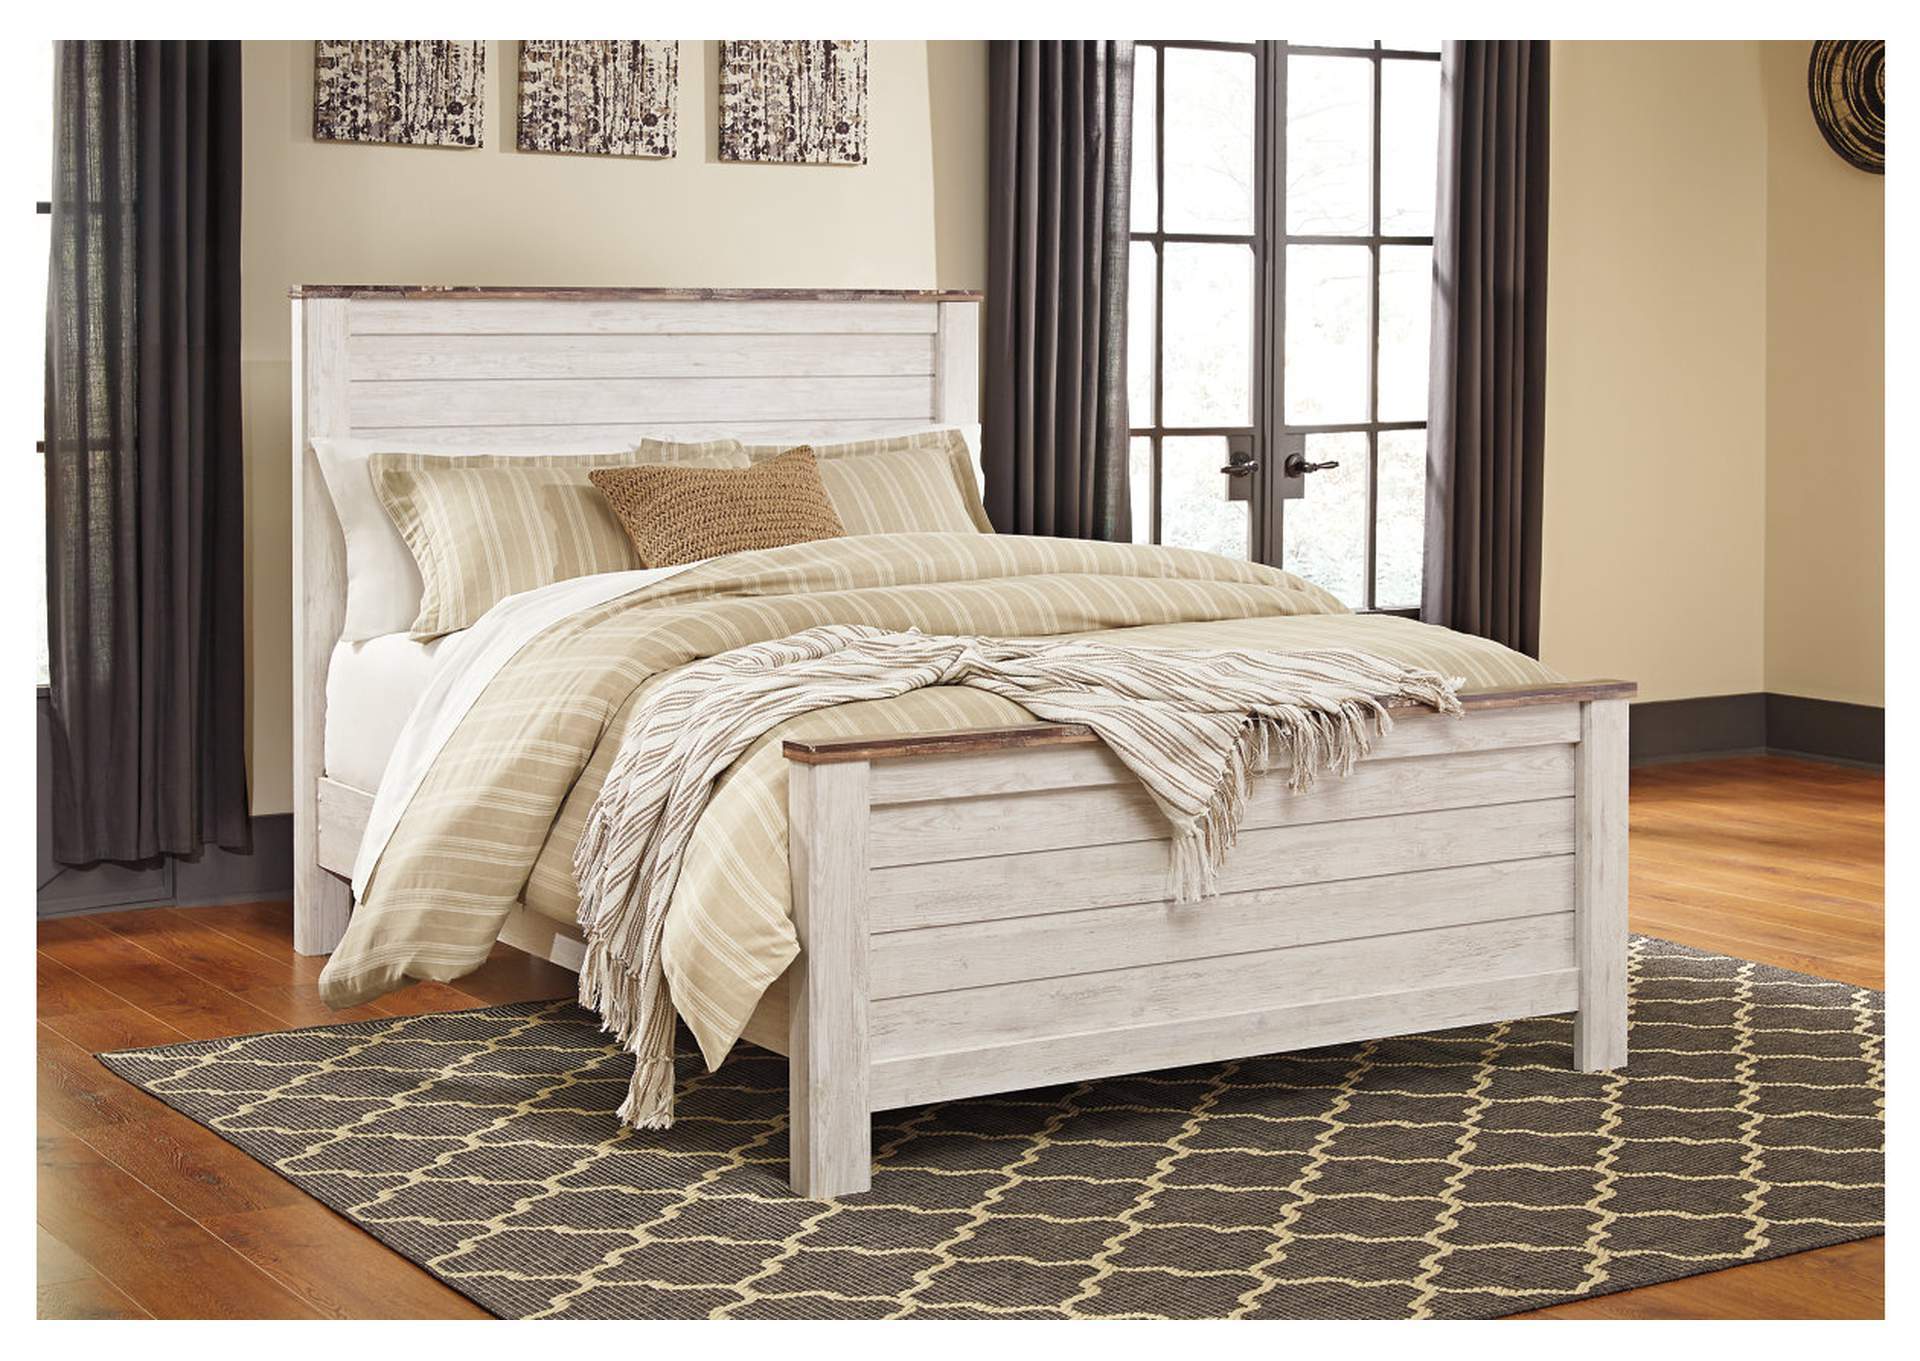 Willowton Whitewash Queen Panel Bed,Direct To Consumer Express